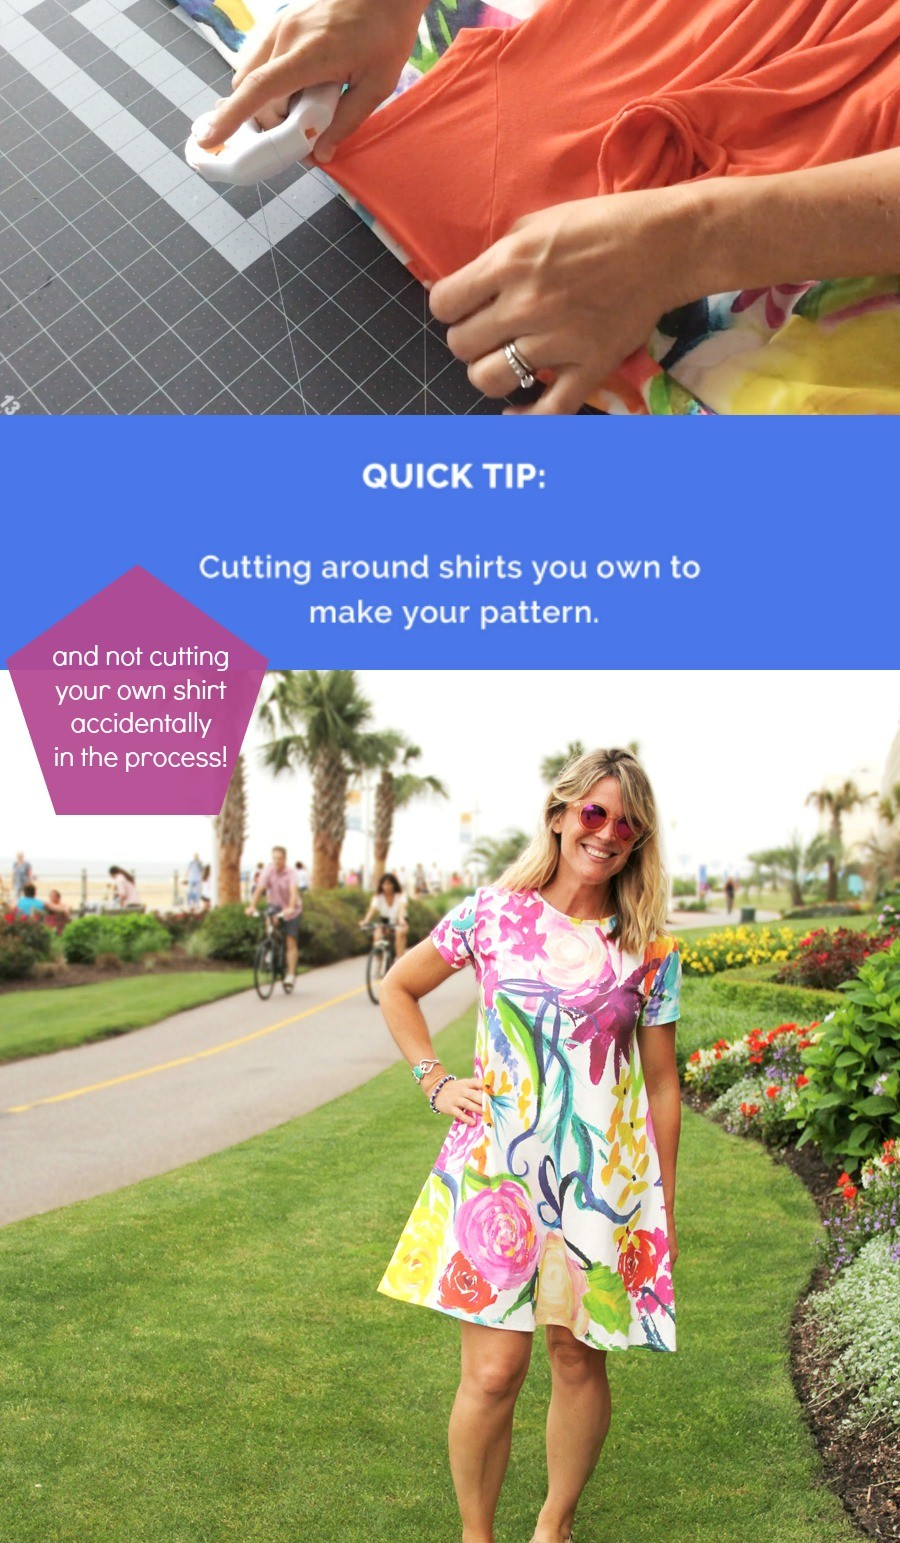 sewing tip: How to cut around a shirt or dress you love, to make your own pattern!